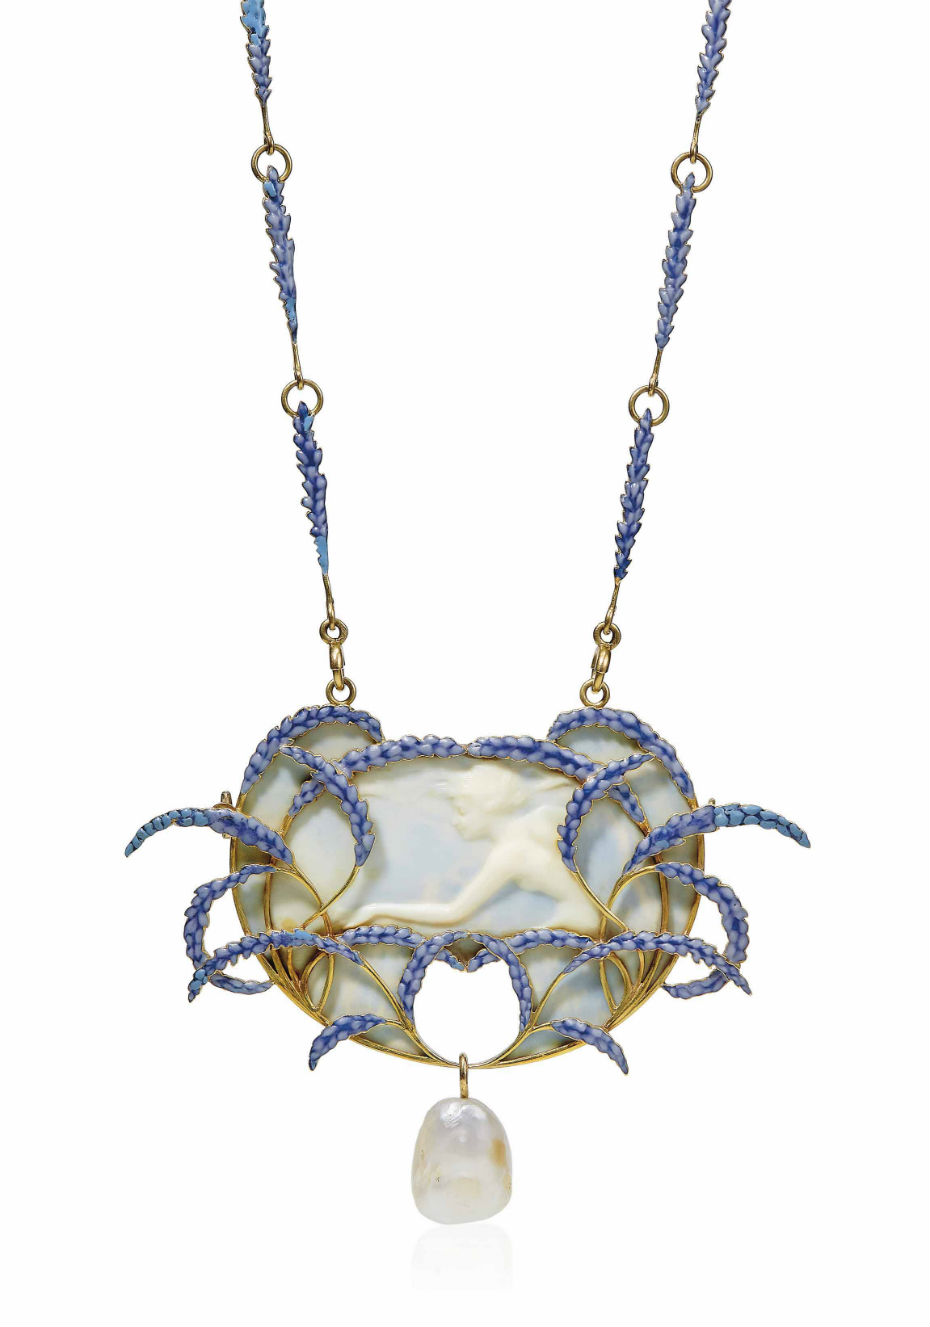 2017_GNV_15697_0032_000an_art_nouveau_galalith_enamel_and_pearl_pendent_necklace_by_rene_lali.jpg